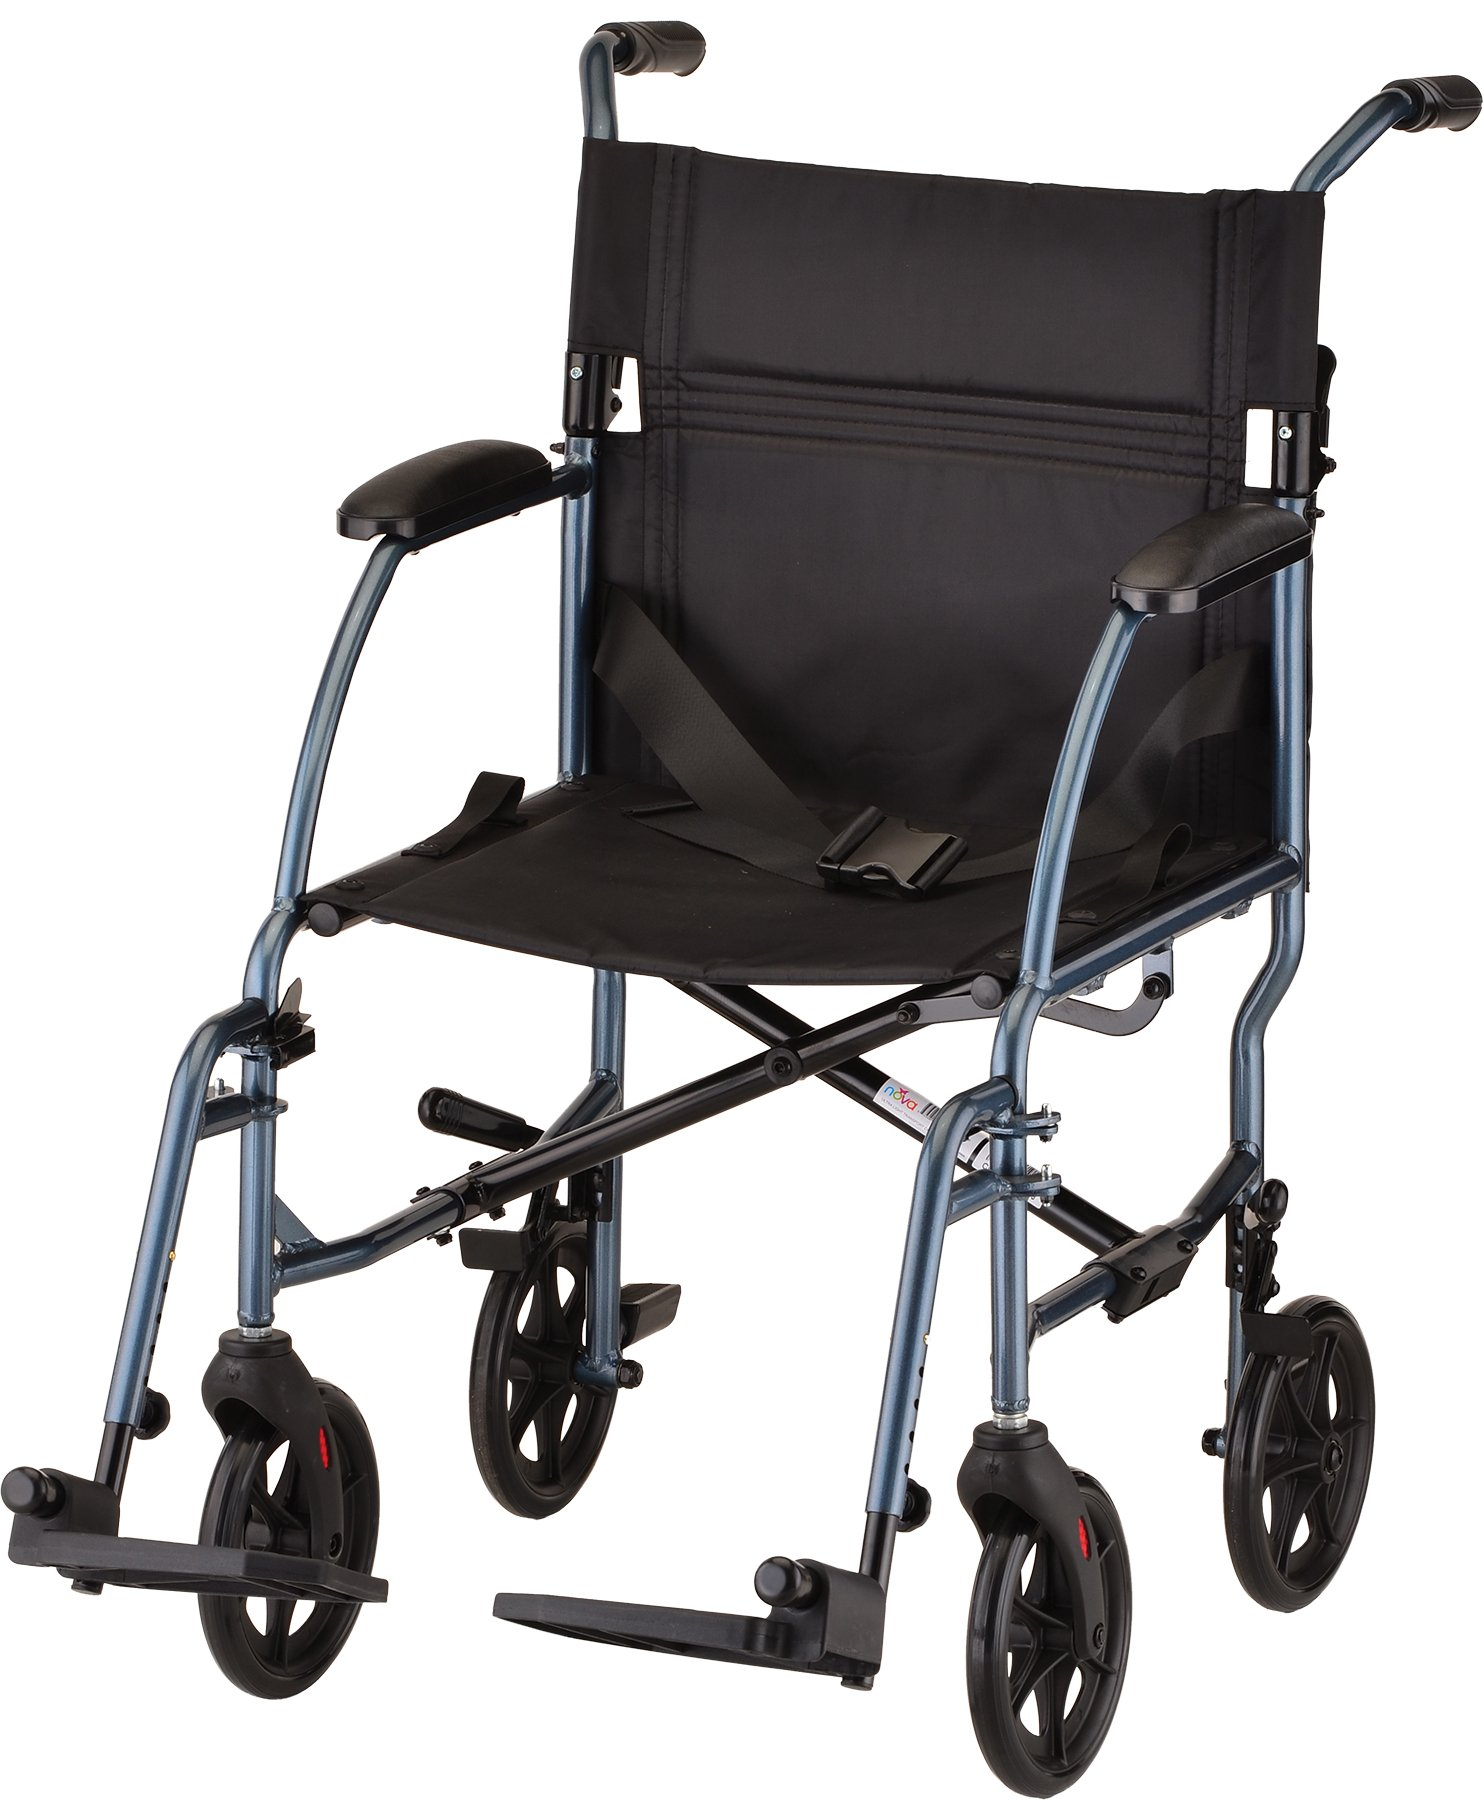 NOVA Ultra Lightweight Transport Chair, Weighs Only 18.75 lb, Compact for Travel, Blue by NOVA Medical Products